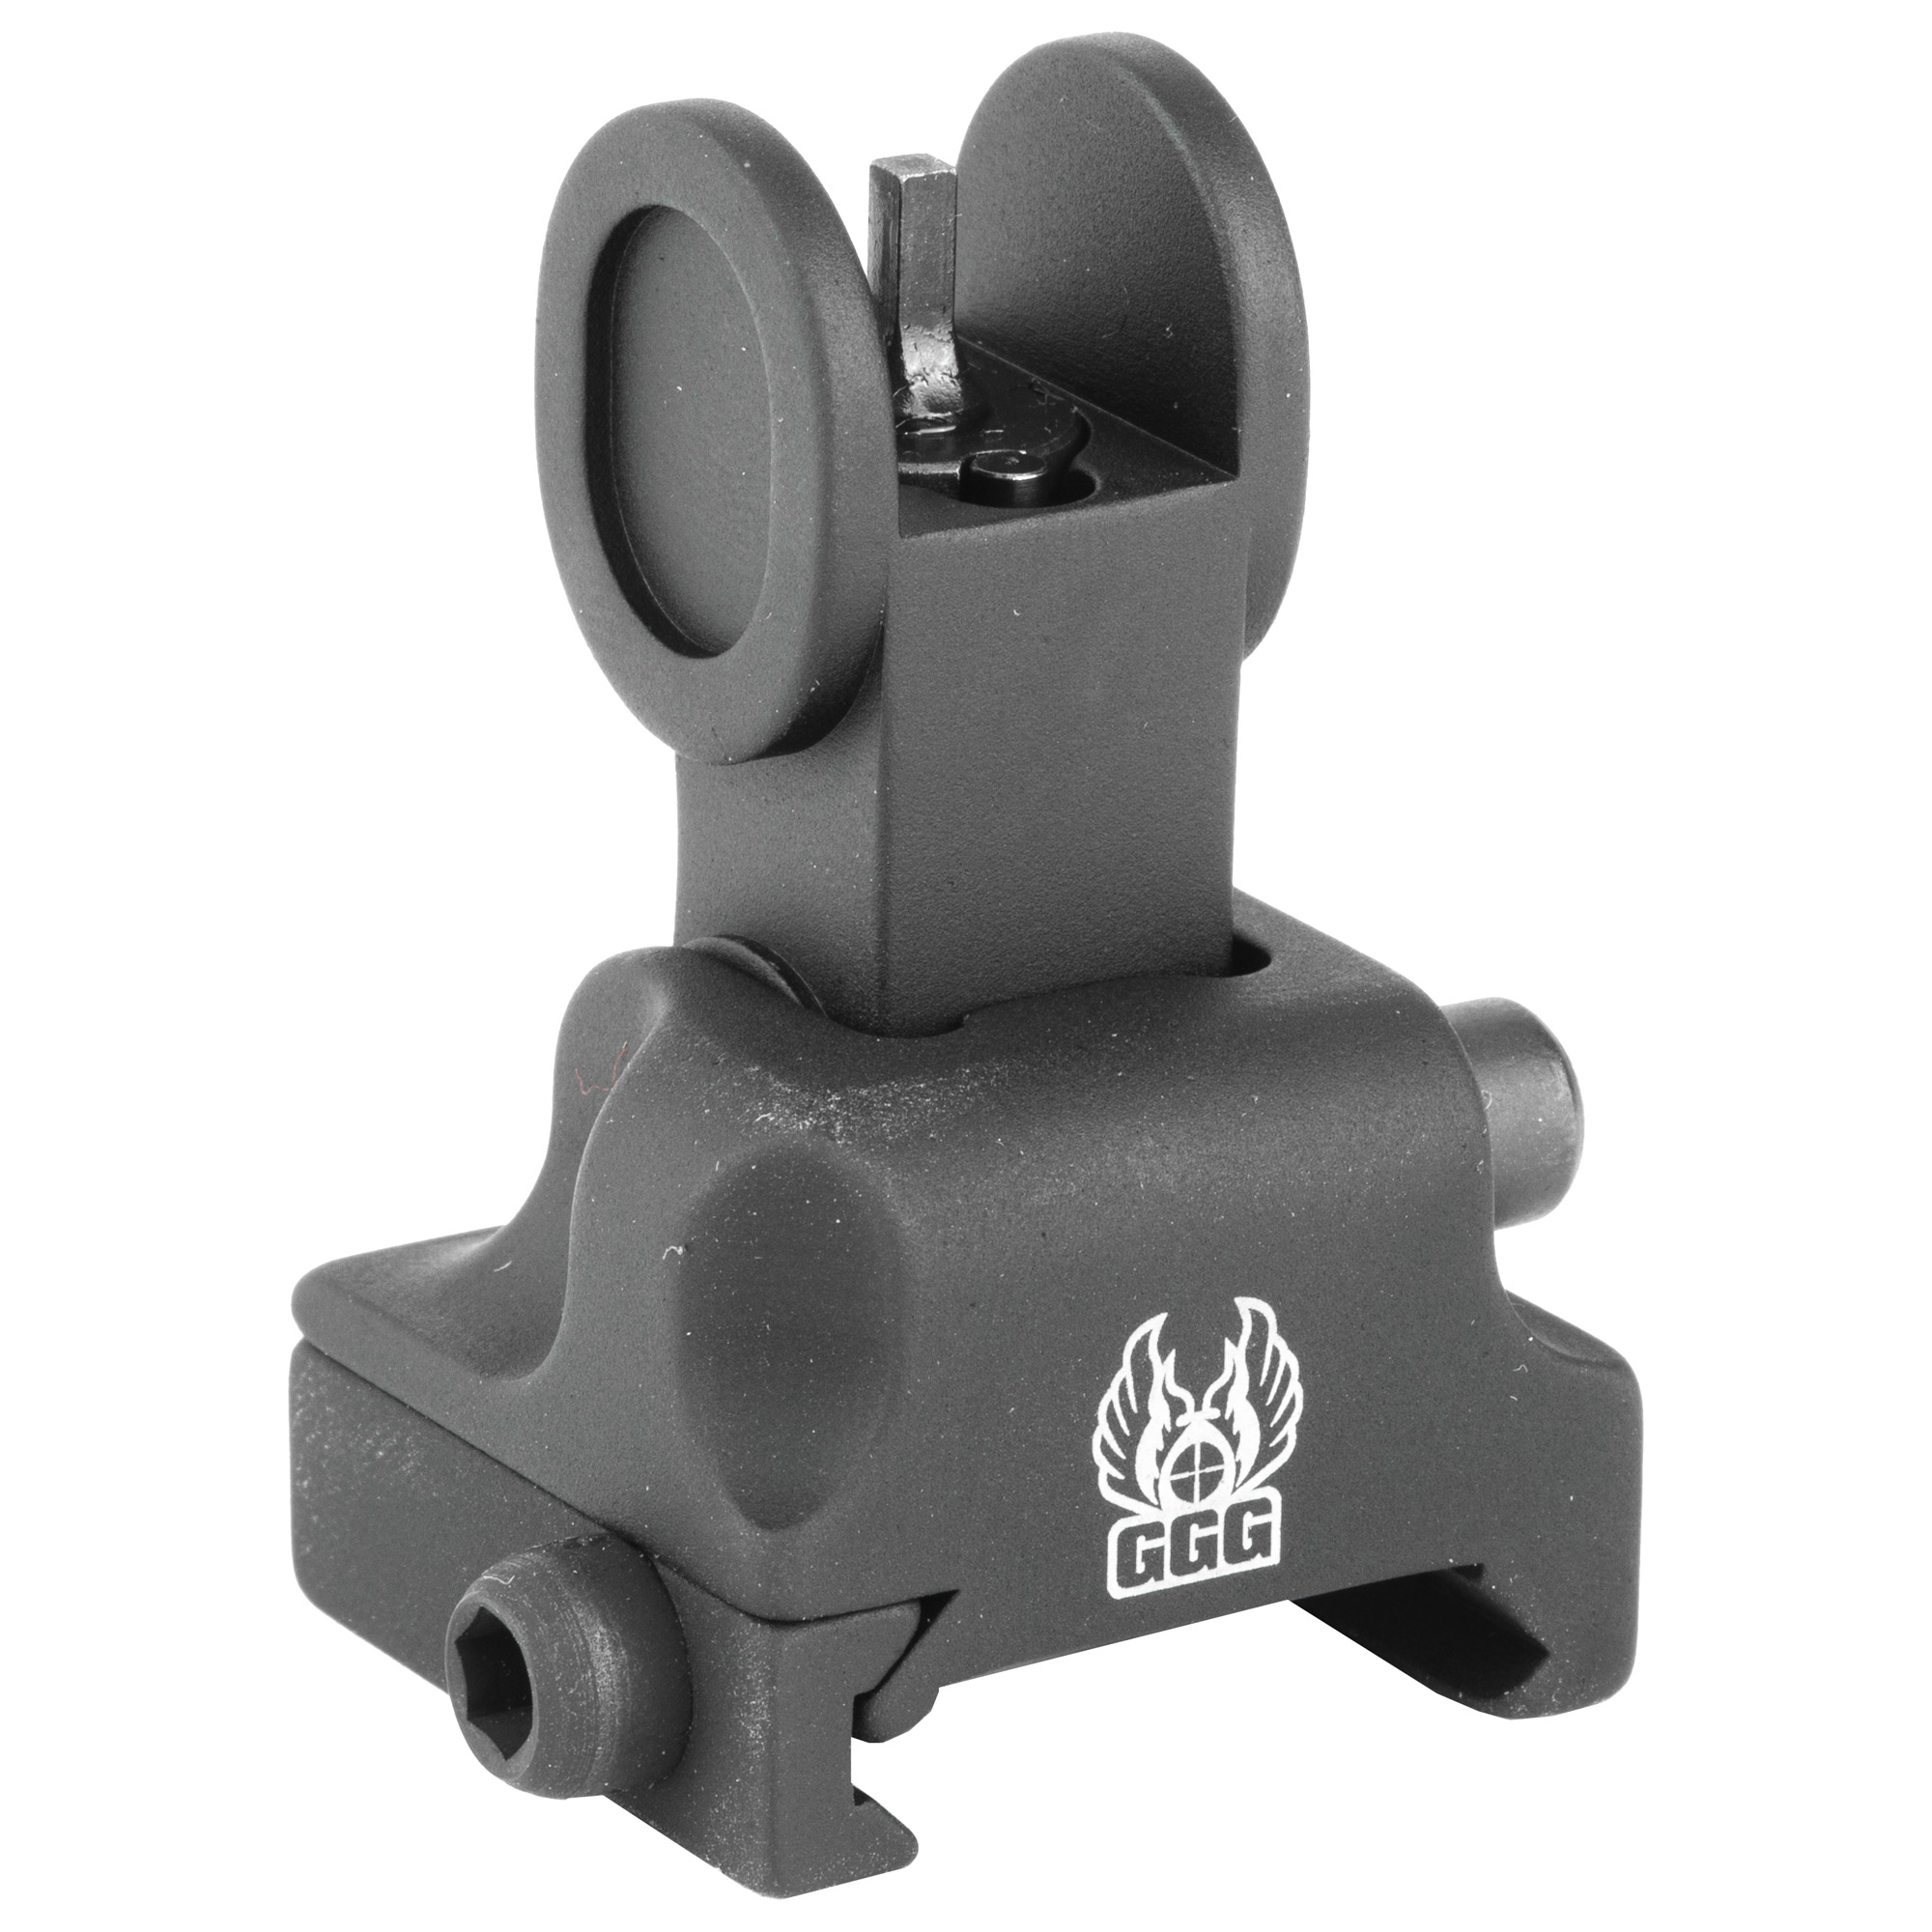 """Although the GG&G Flip Up Front Sight For Tactical Forearms was specifically designed to provide the correct sight height when mounted on a tactical forearm"""" this sight can also be installed on gas blocks that are at the same height as the upper receiver. It is manually operated versus spring-actuated and provides a smaller overall profile."""